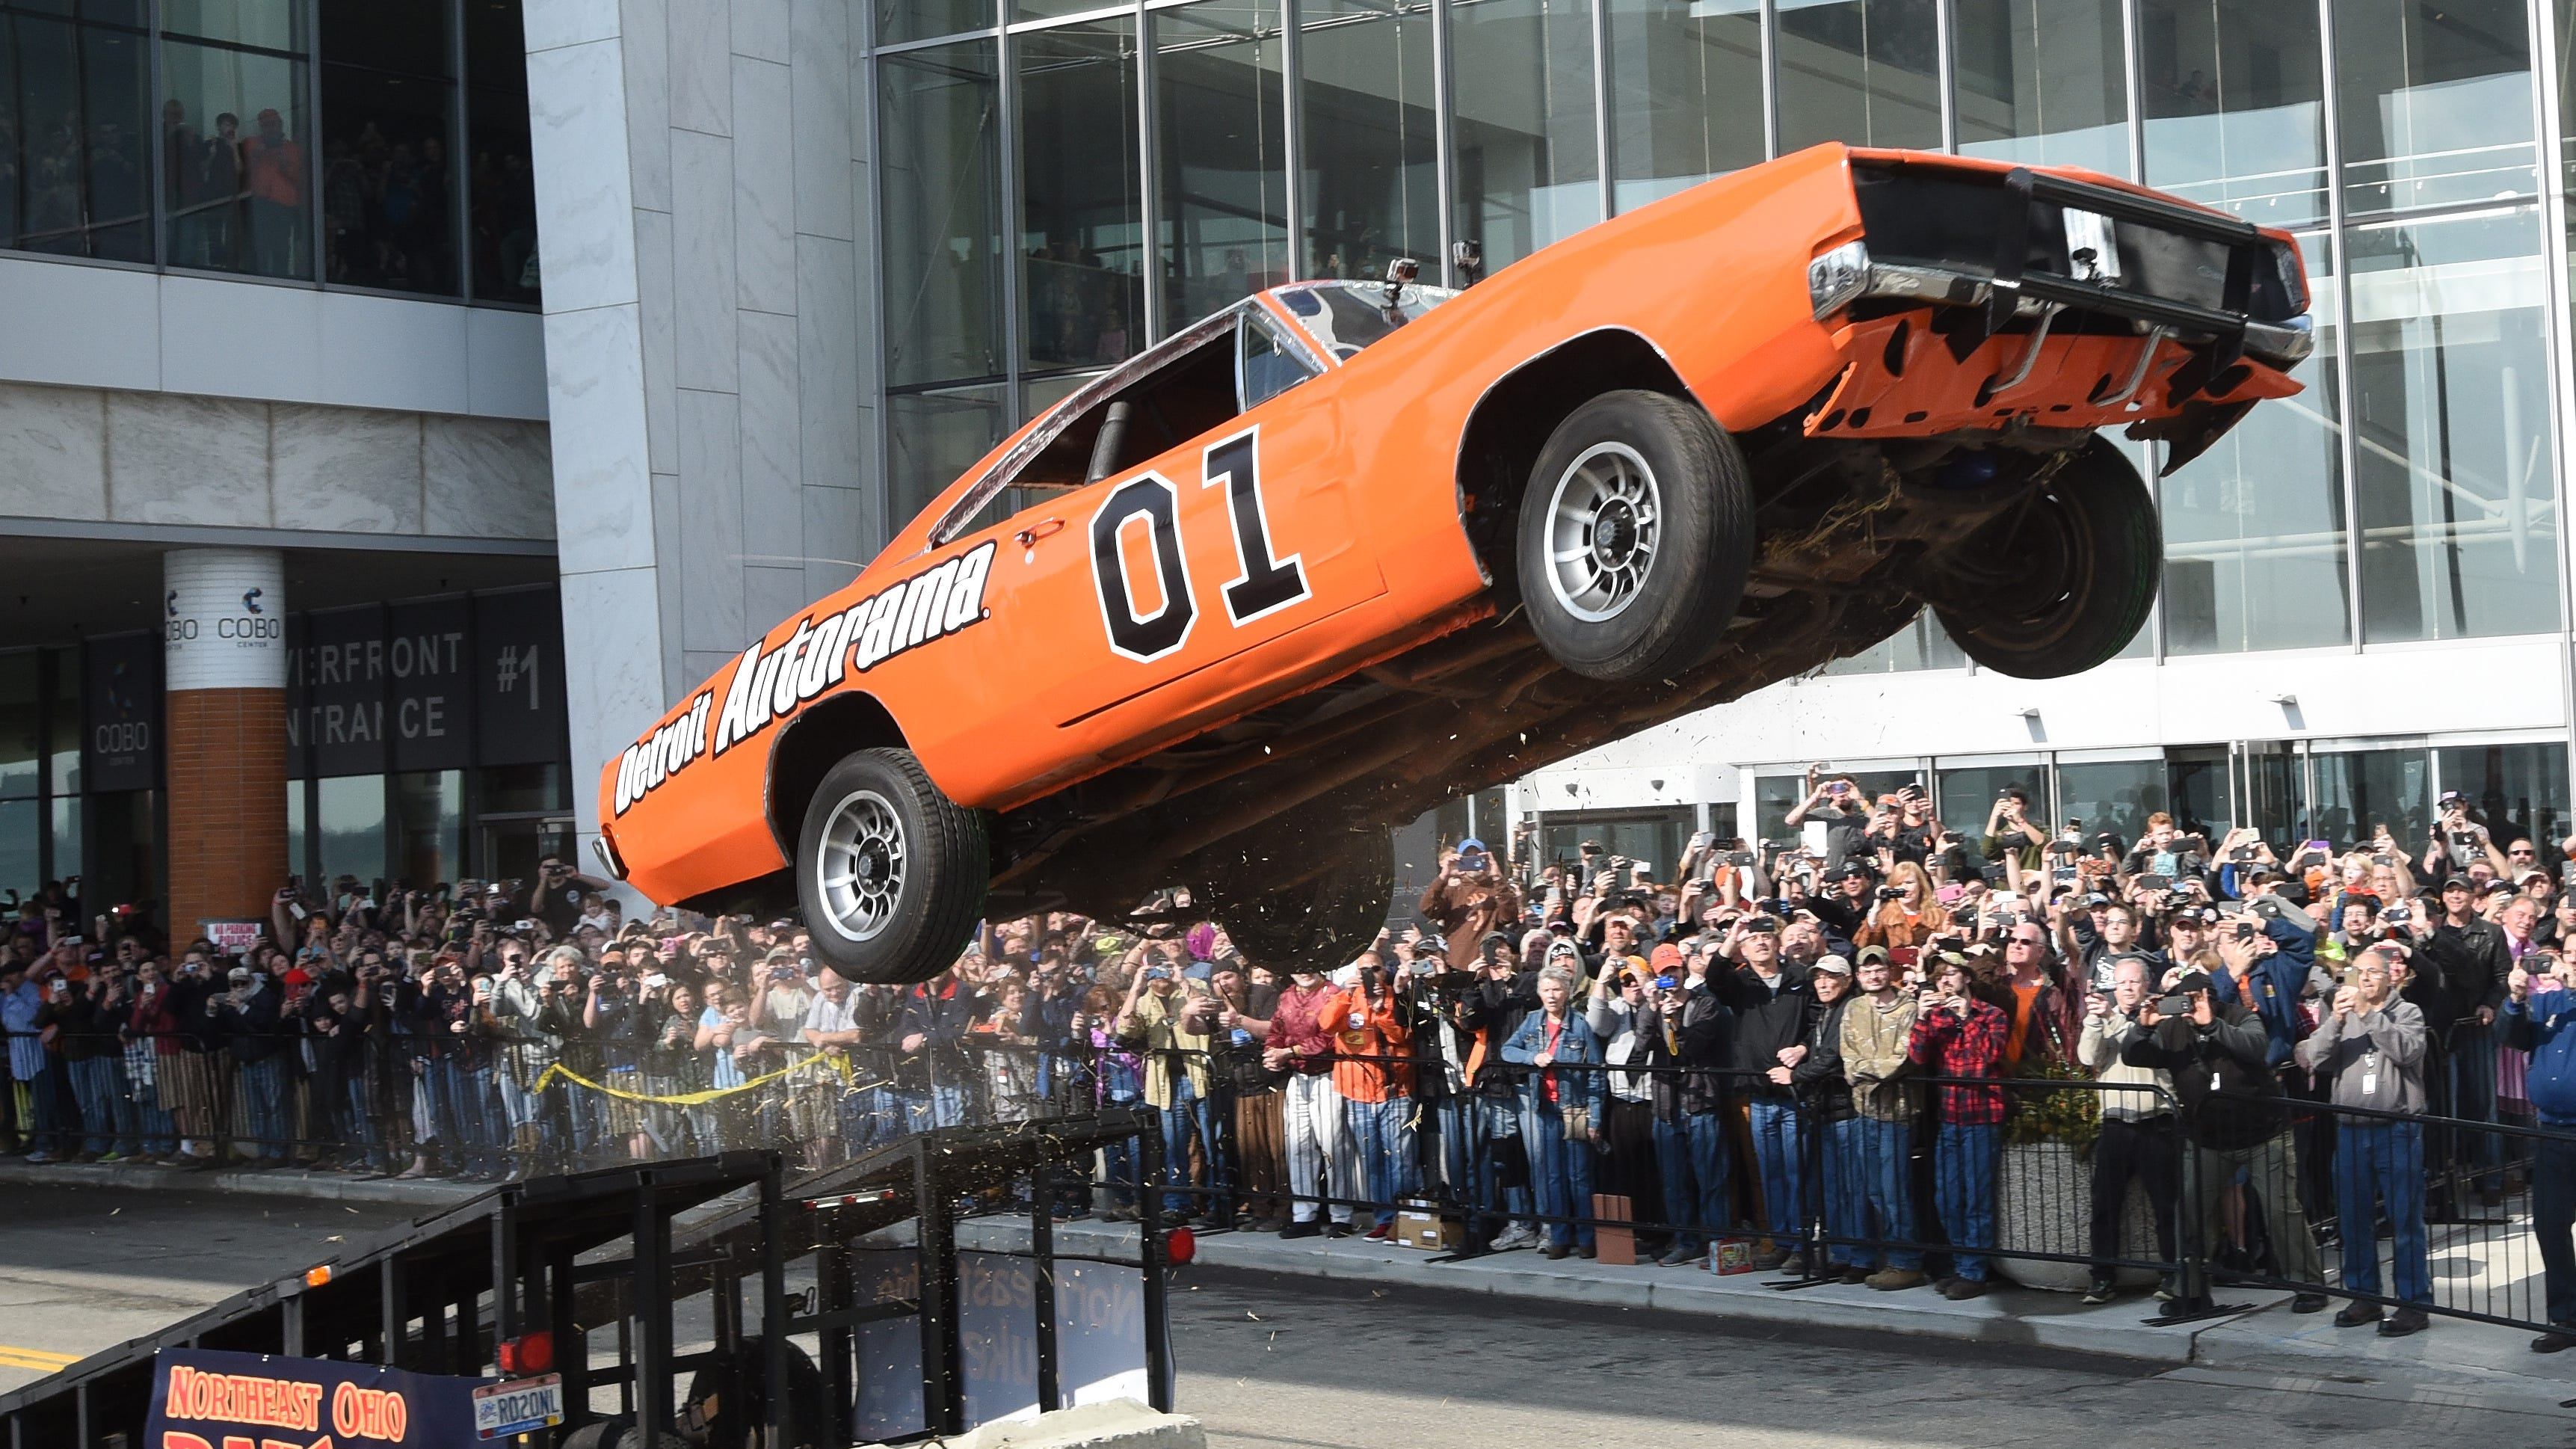 Detroit council grounds Autorama jump due to Confederate imagery